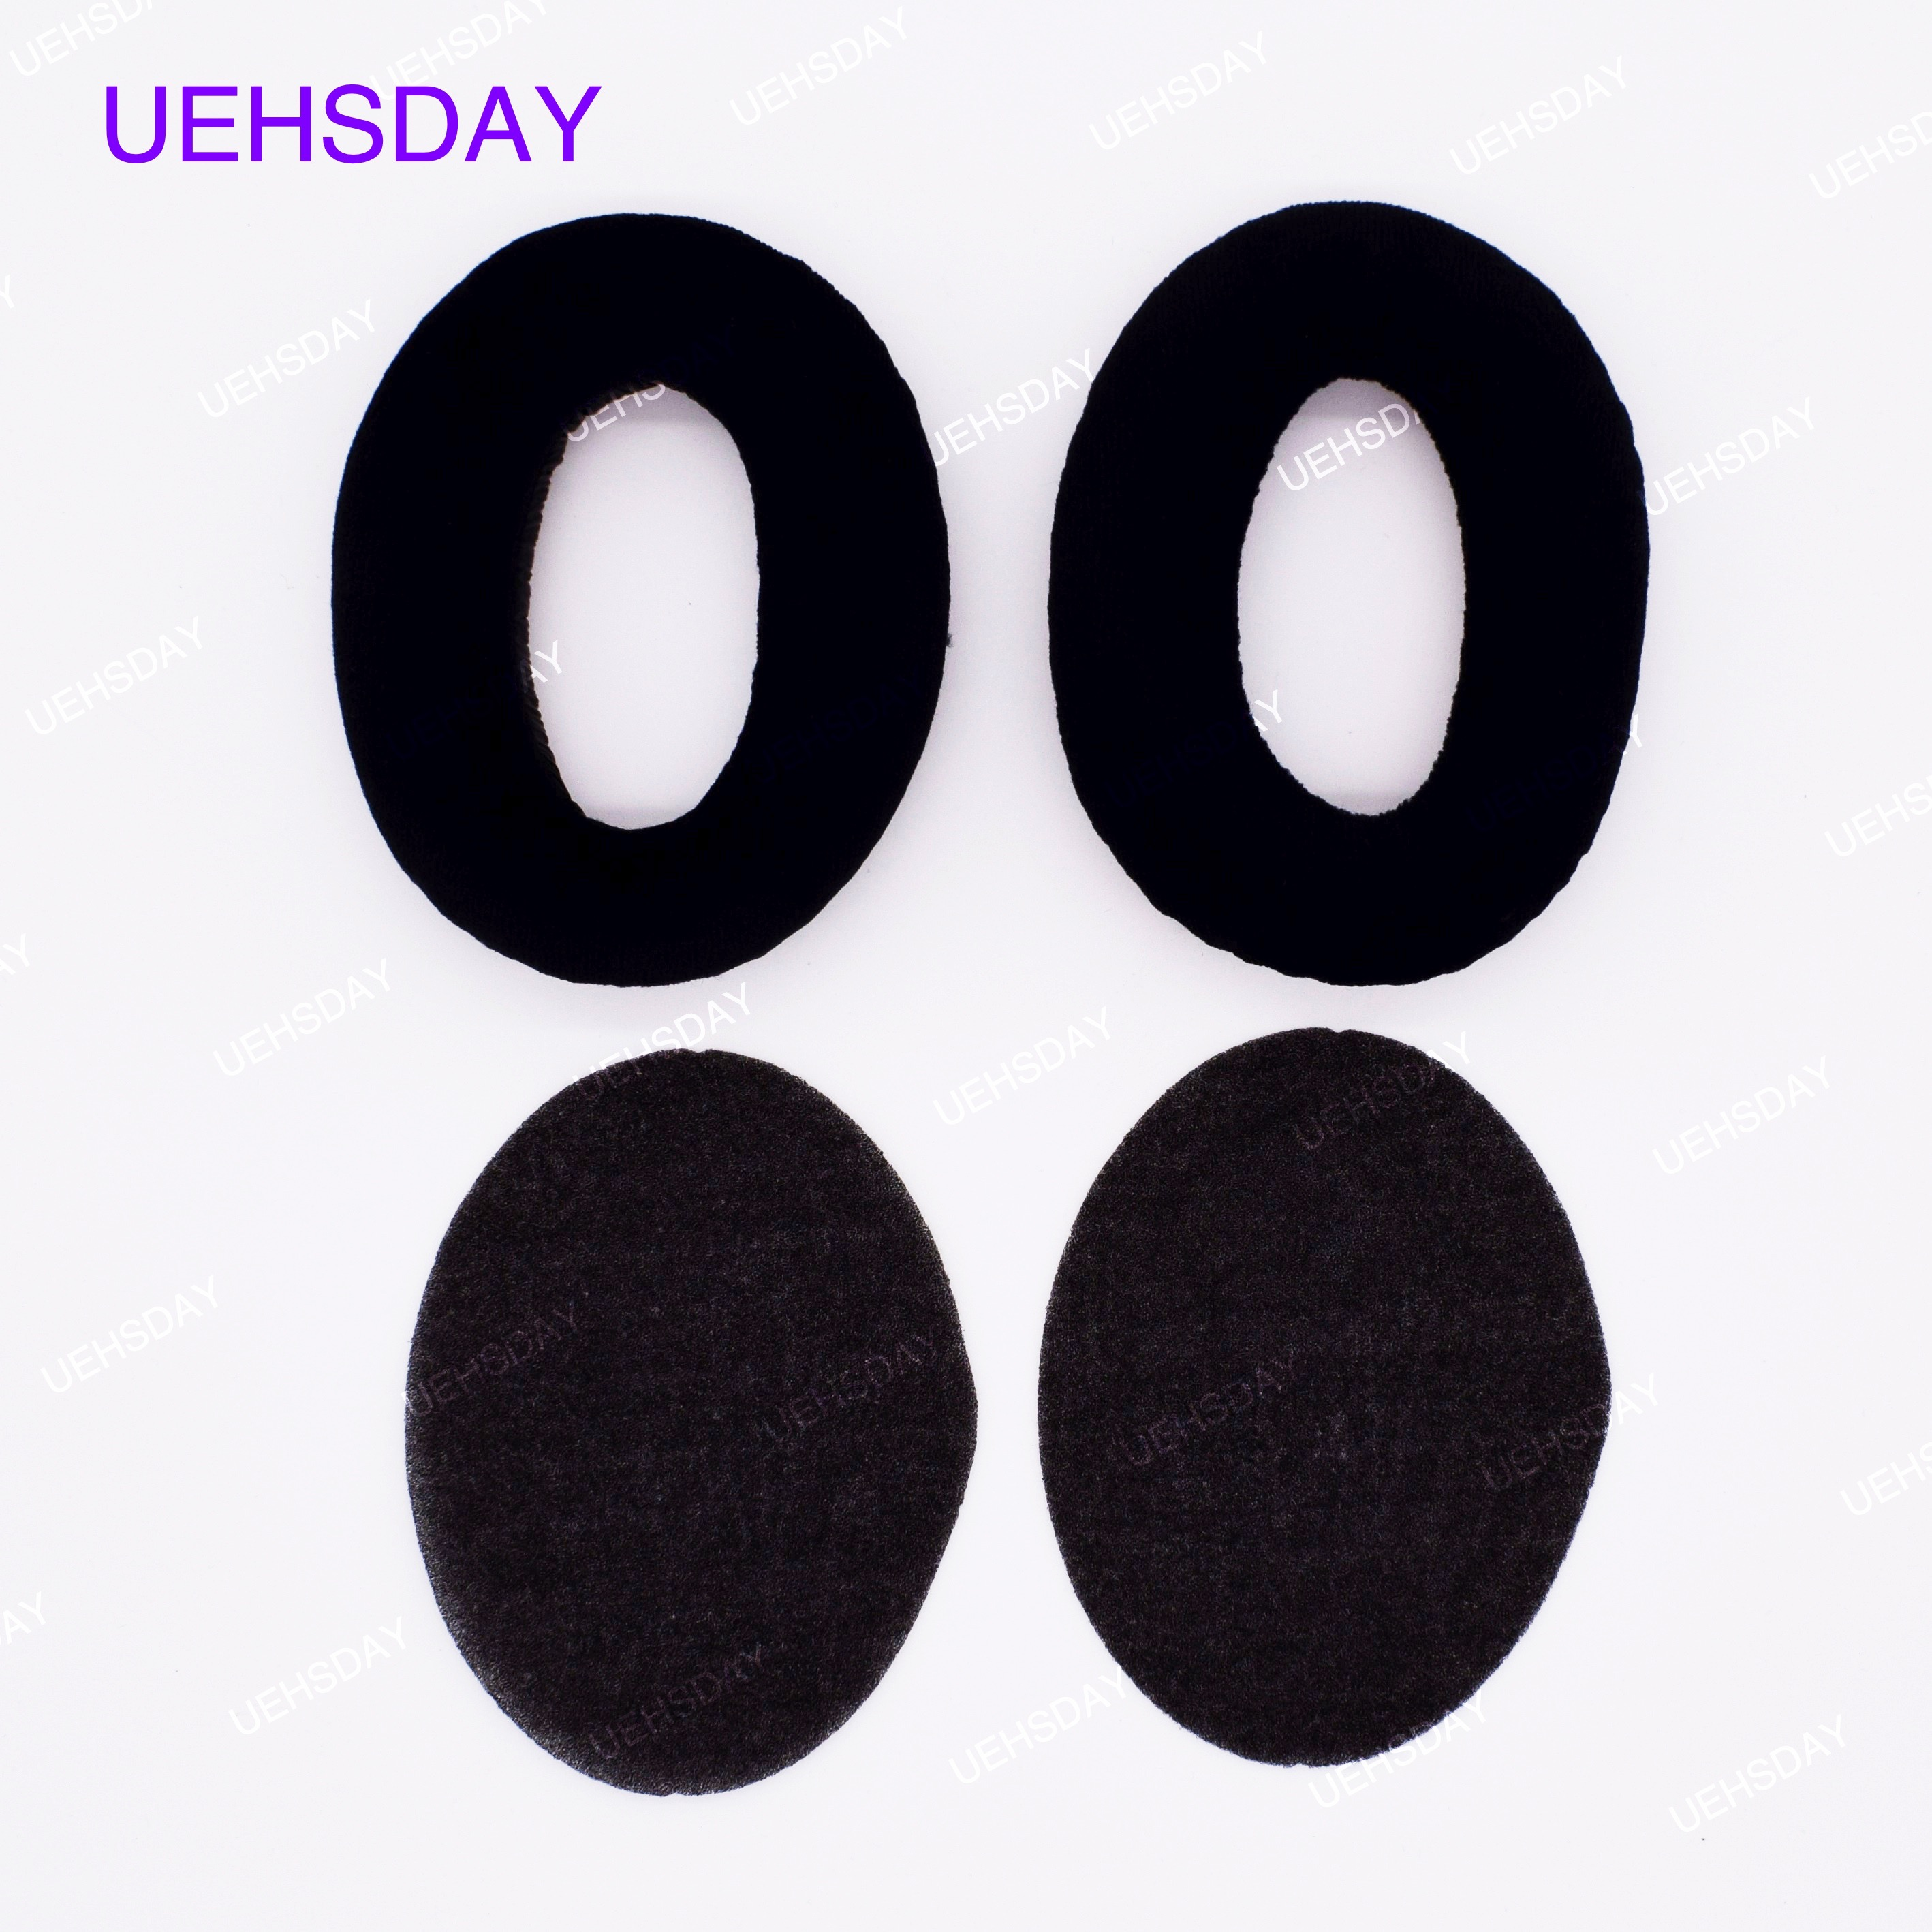 1 Pair Soft Foam <font><b>Ear</b></font> <font><b>Pads</b></font> Cushion For <font><b>Sennheiser</b></font> Headphones HD545 HD565 HD580 HD600 <font><b>HD650</b></font> Replacement <font><b>Ear</b></font> Cup image